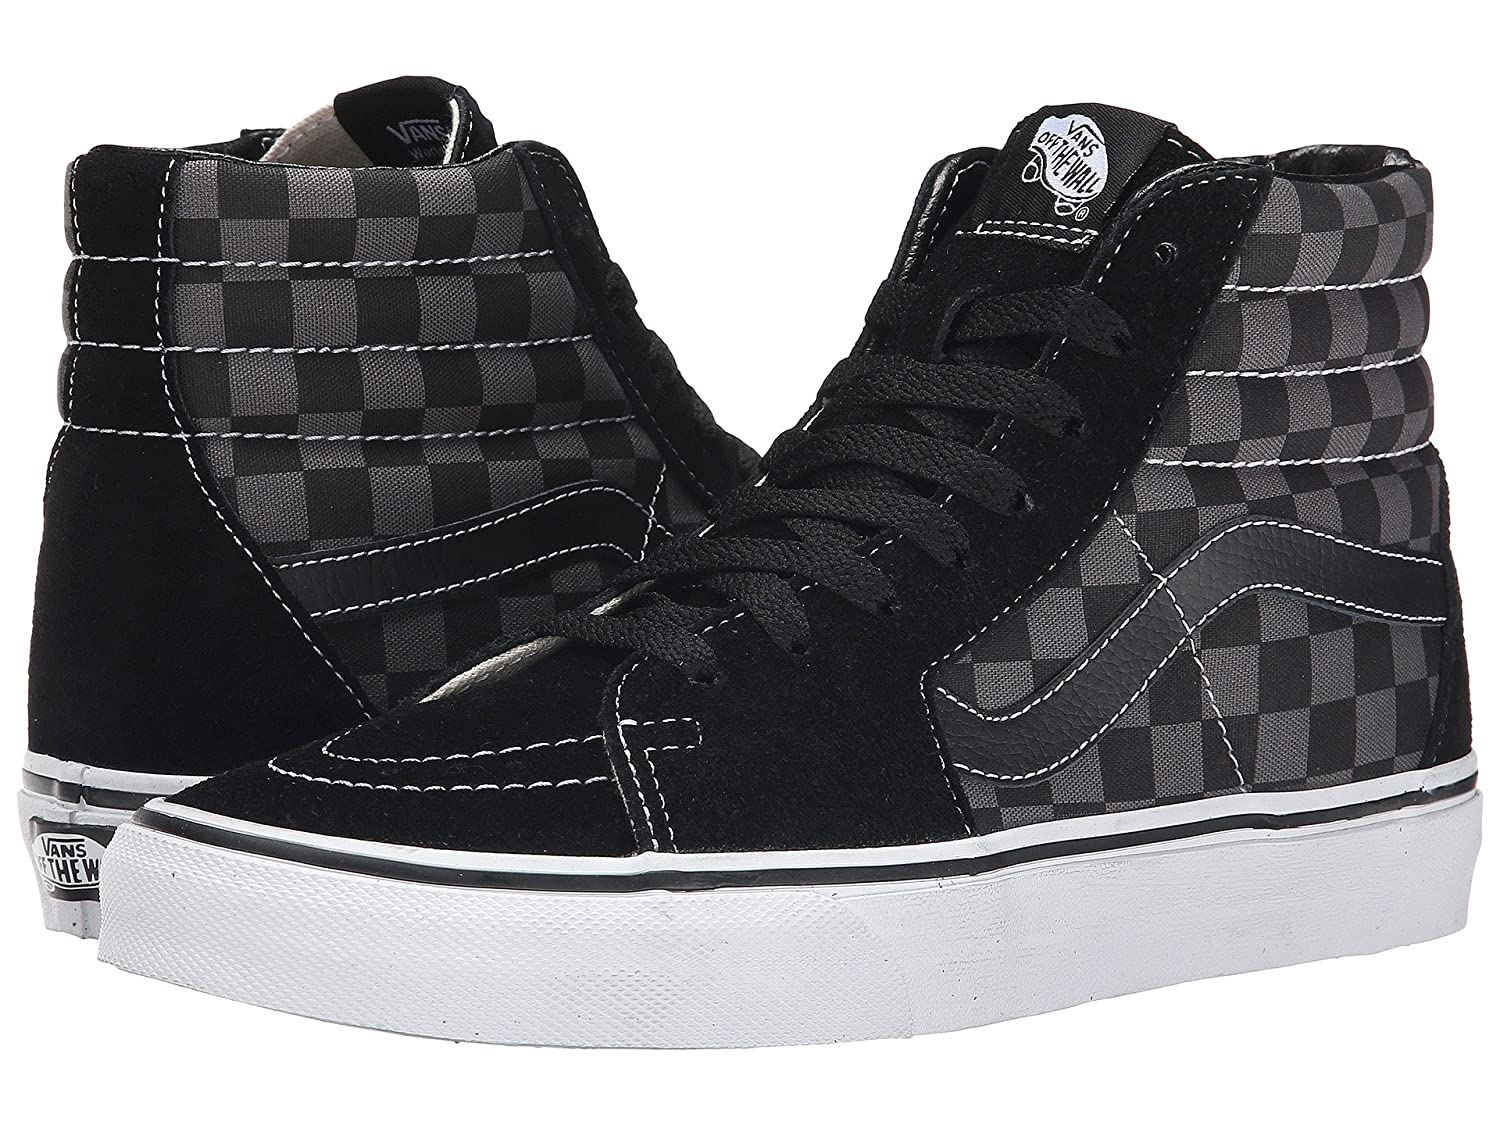 VANS MENS SK8 HI REISSUE LEATHER SHOES B0763CC55F 40 M EU / 7.5 D(M) US|Black/Pewter Checkerboard